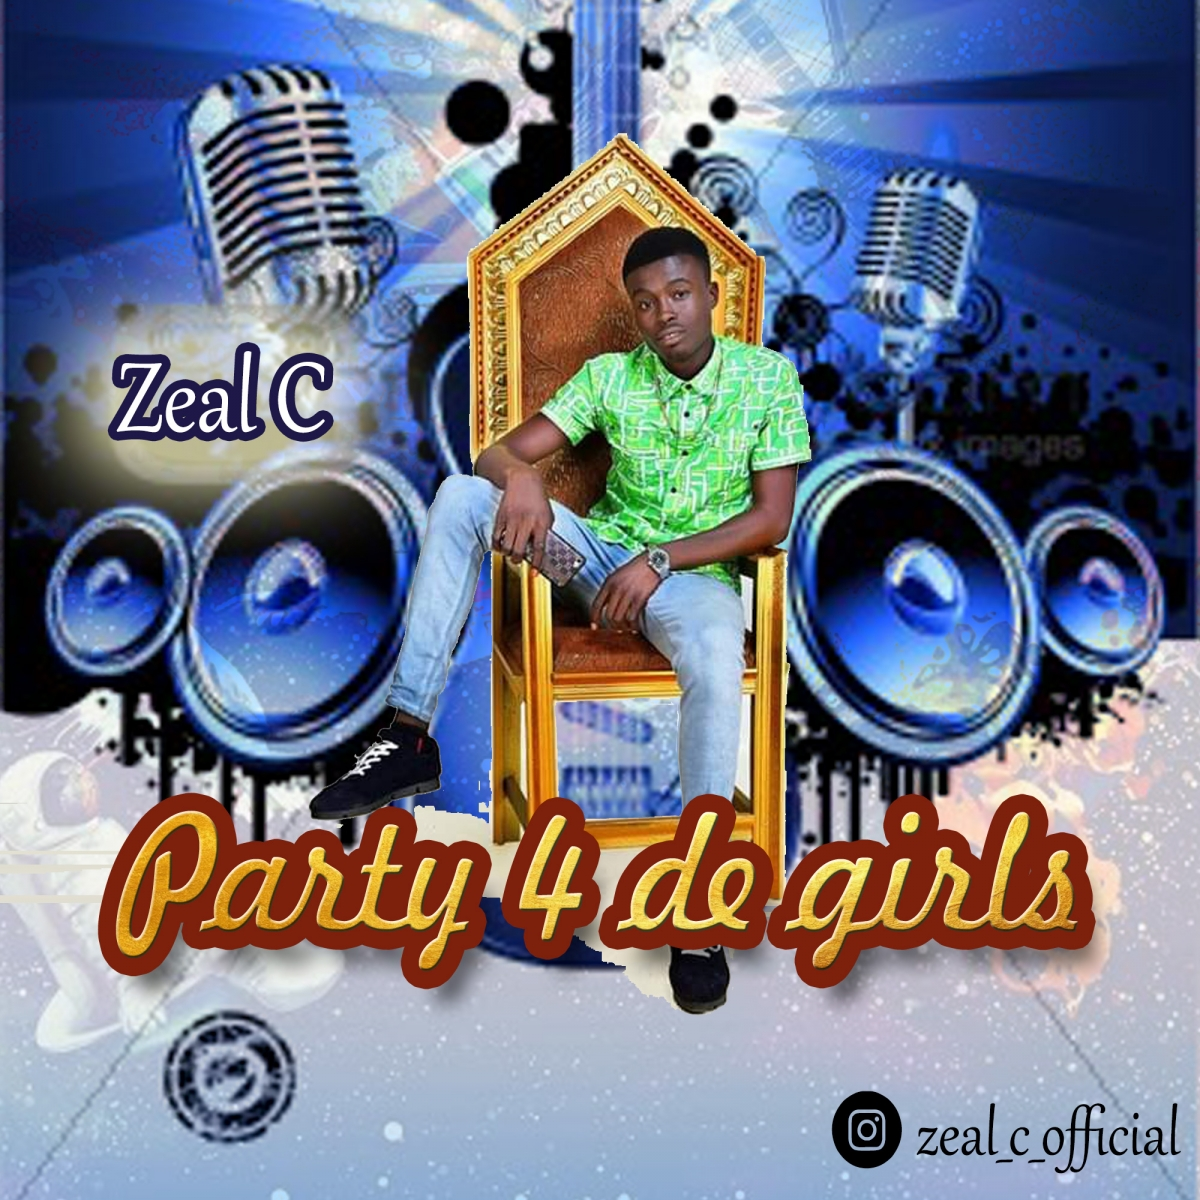 Zeal C - Party 4 De Girls